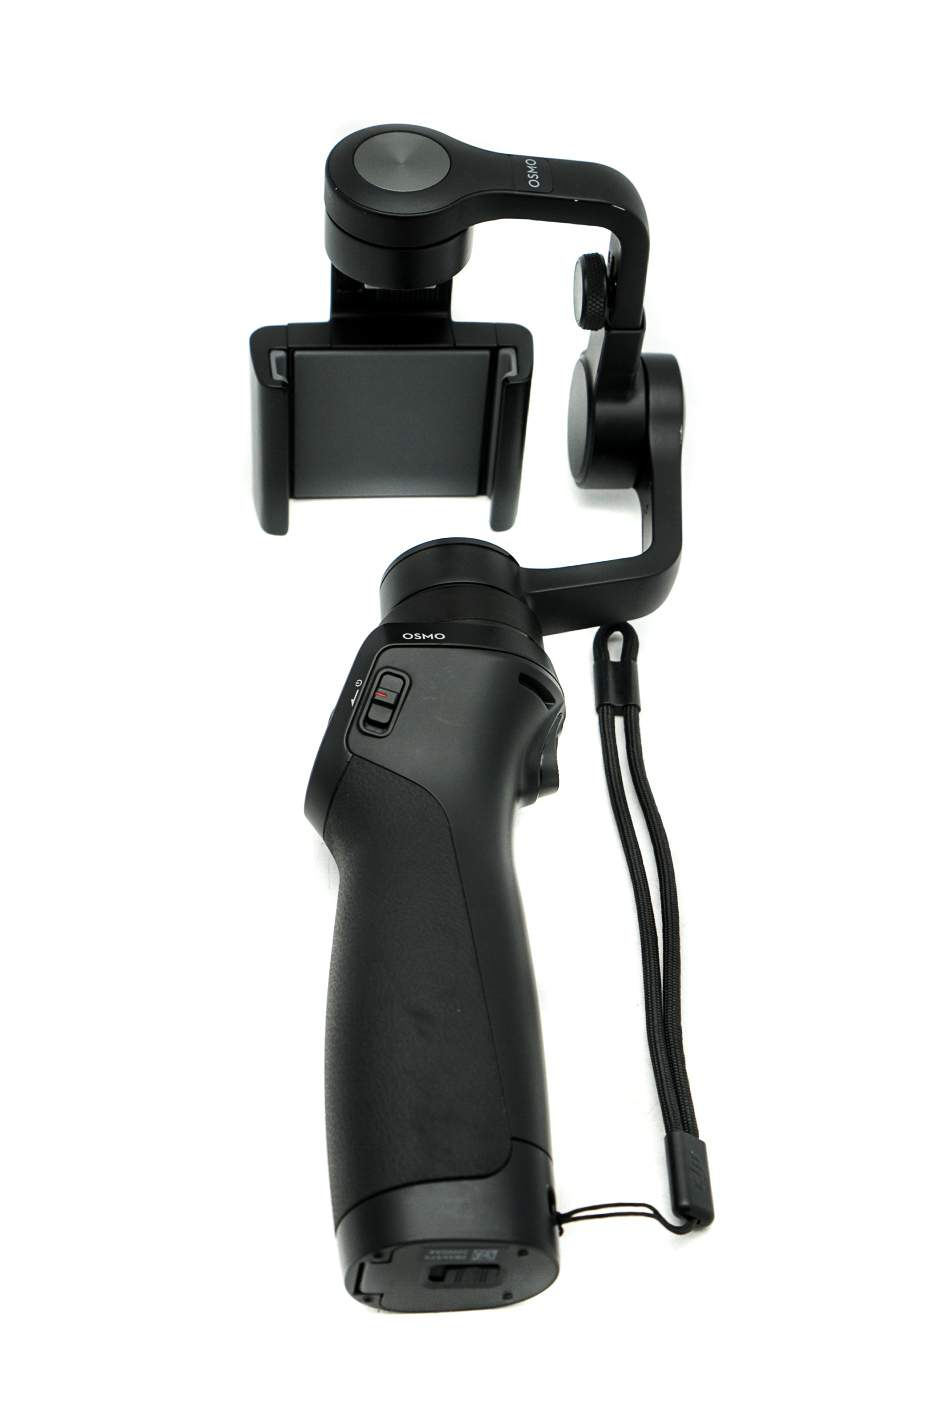 Dji Osmo Mobile Rent From 14 Month Free Base